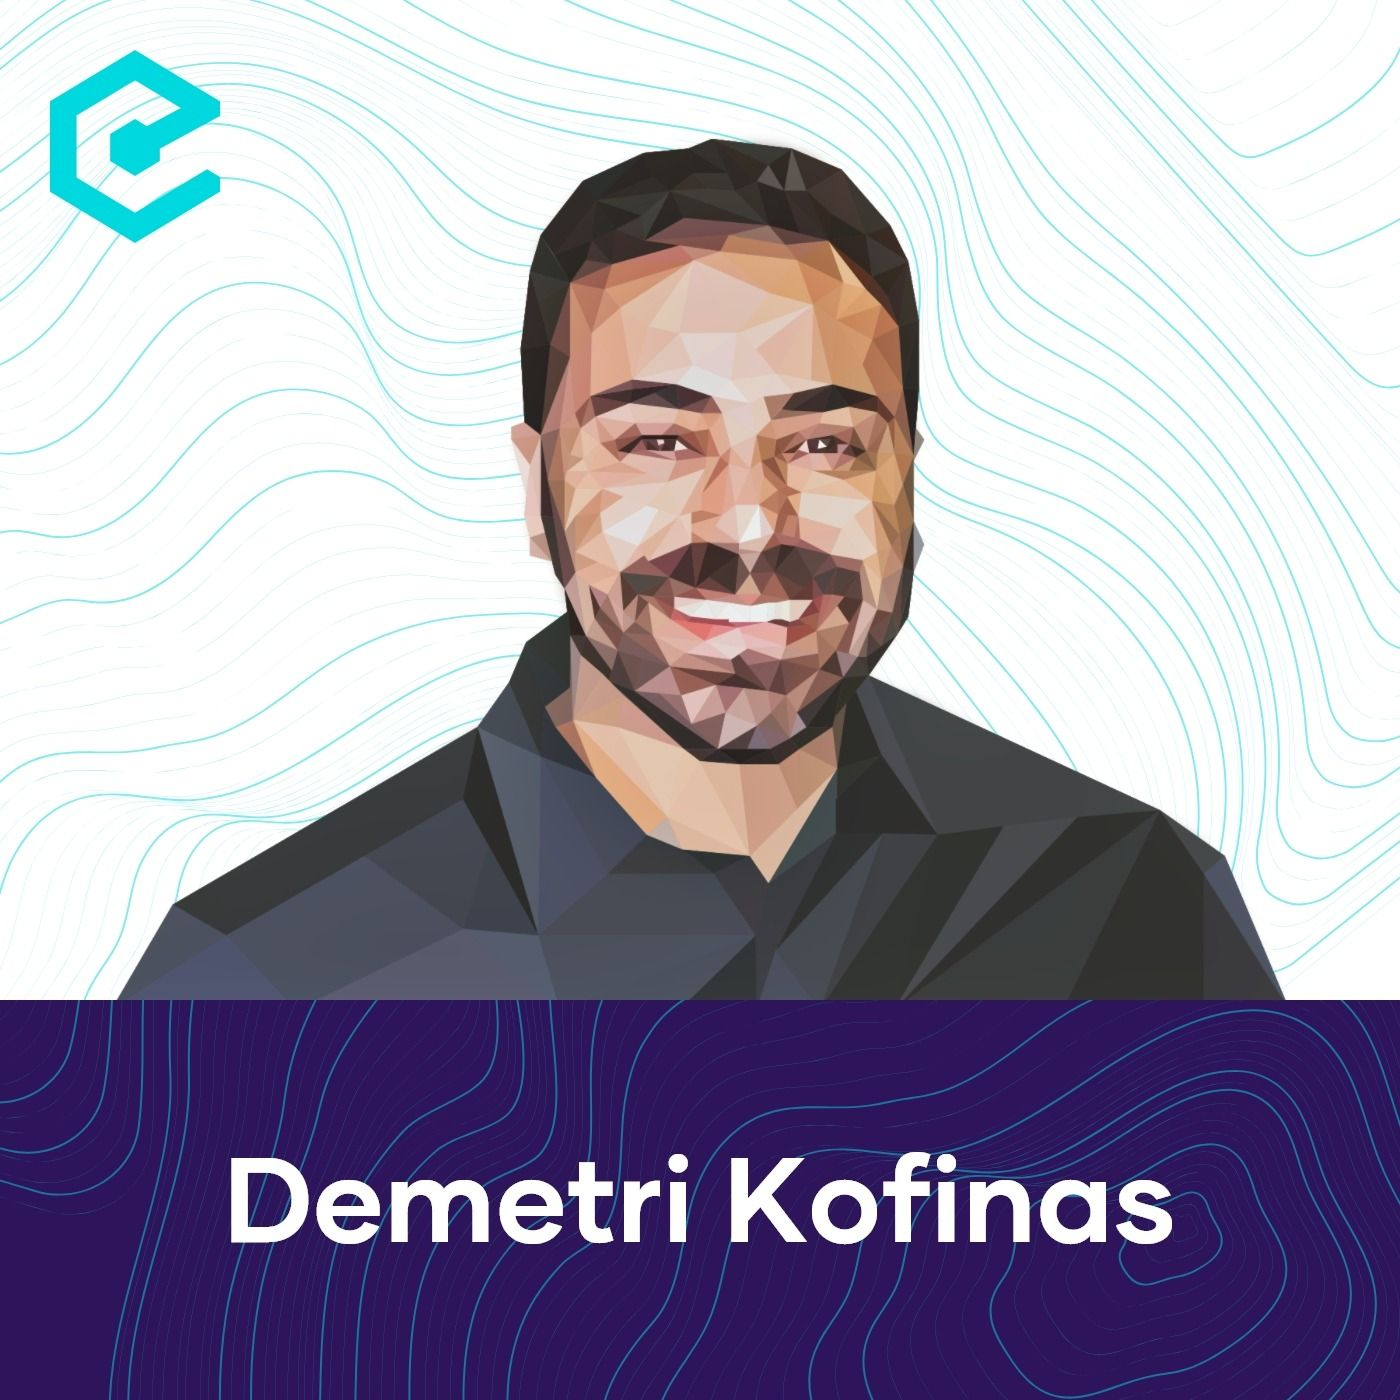 Demetri Kofinas: Uncovering the Hidden Forces of Today's Society